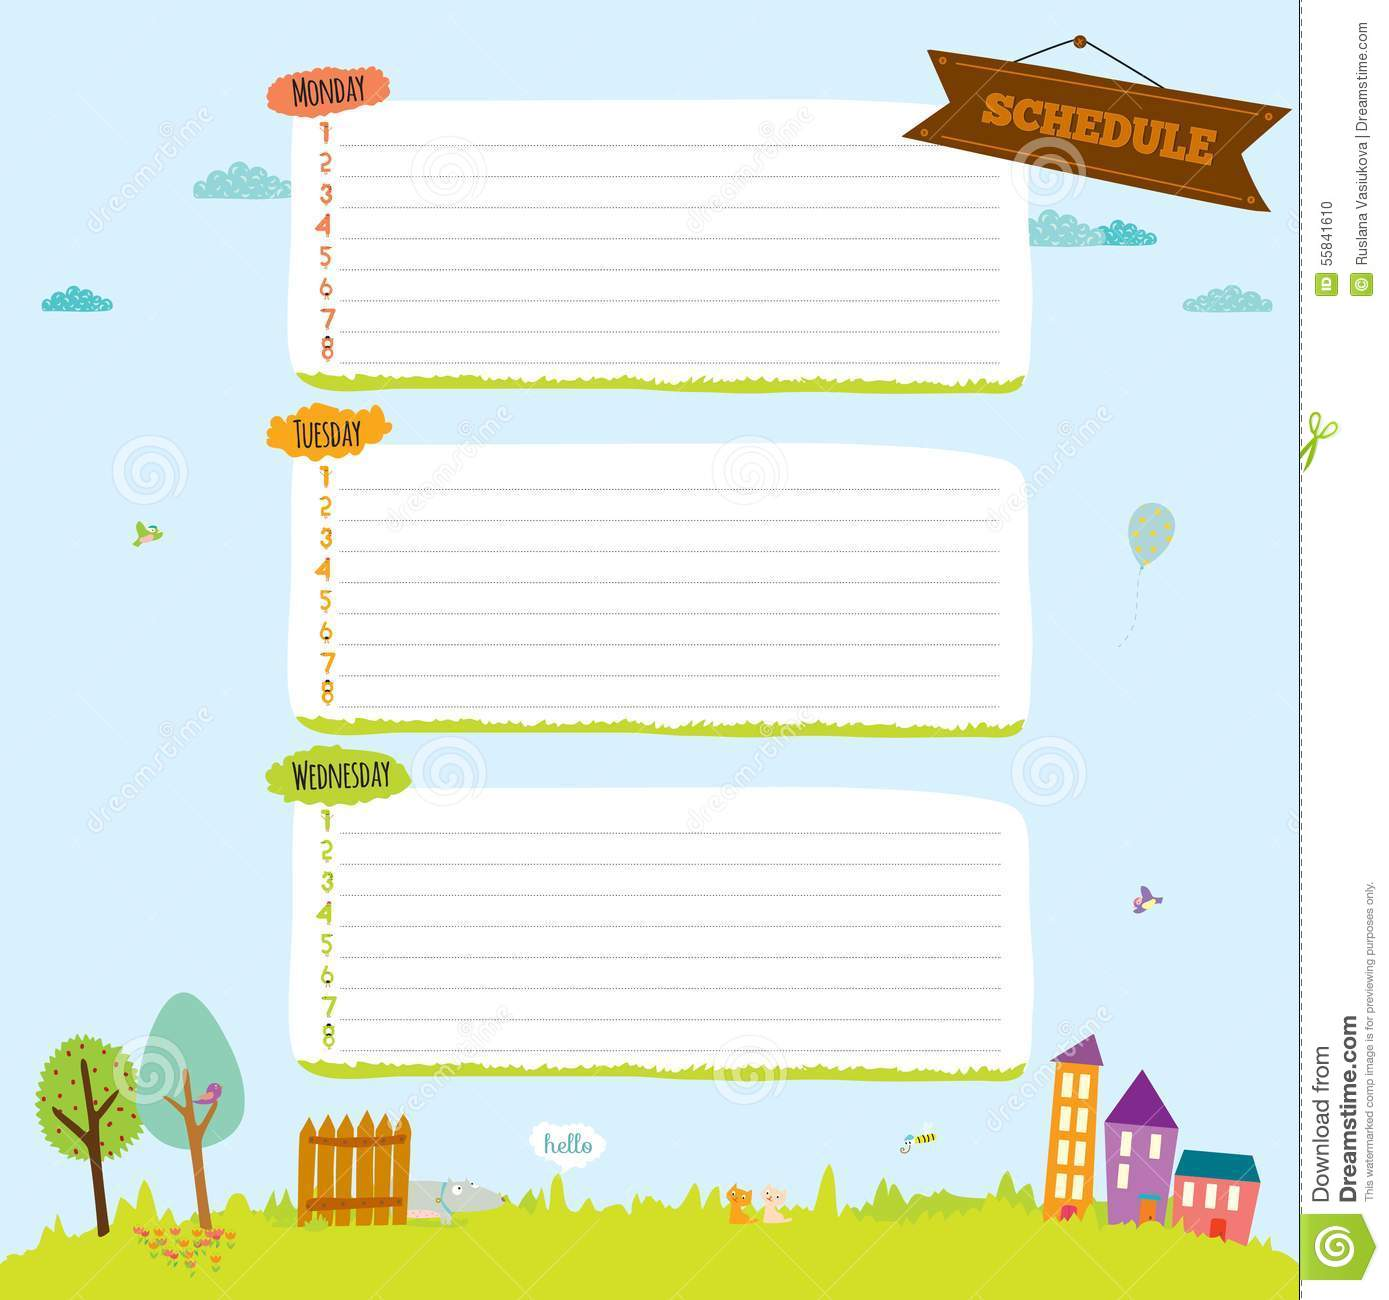 Perfect powerpoint templates cute inspiration documentation free preschool powerpoint templates mandegarfo toneelgroepblik Image collections